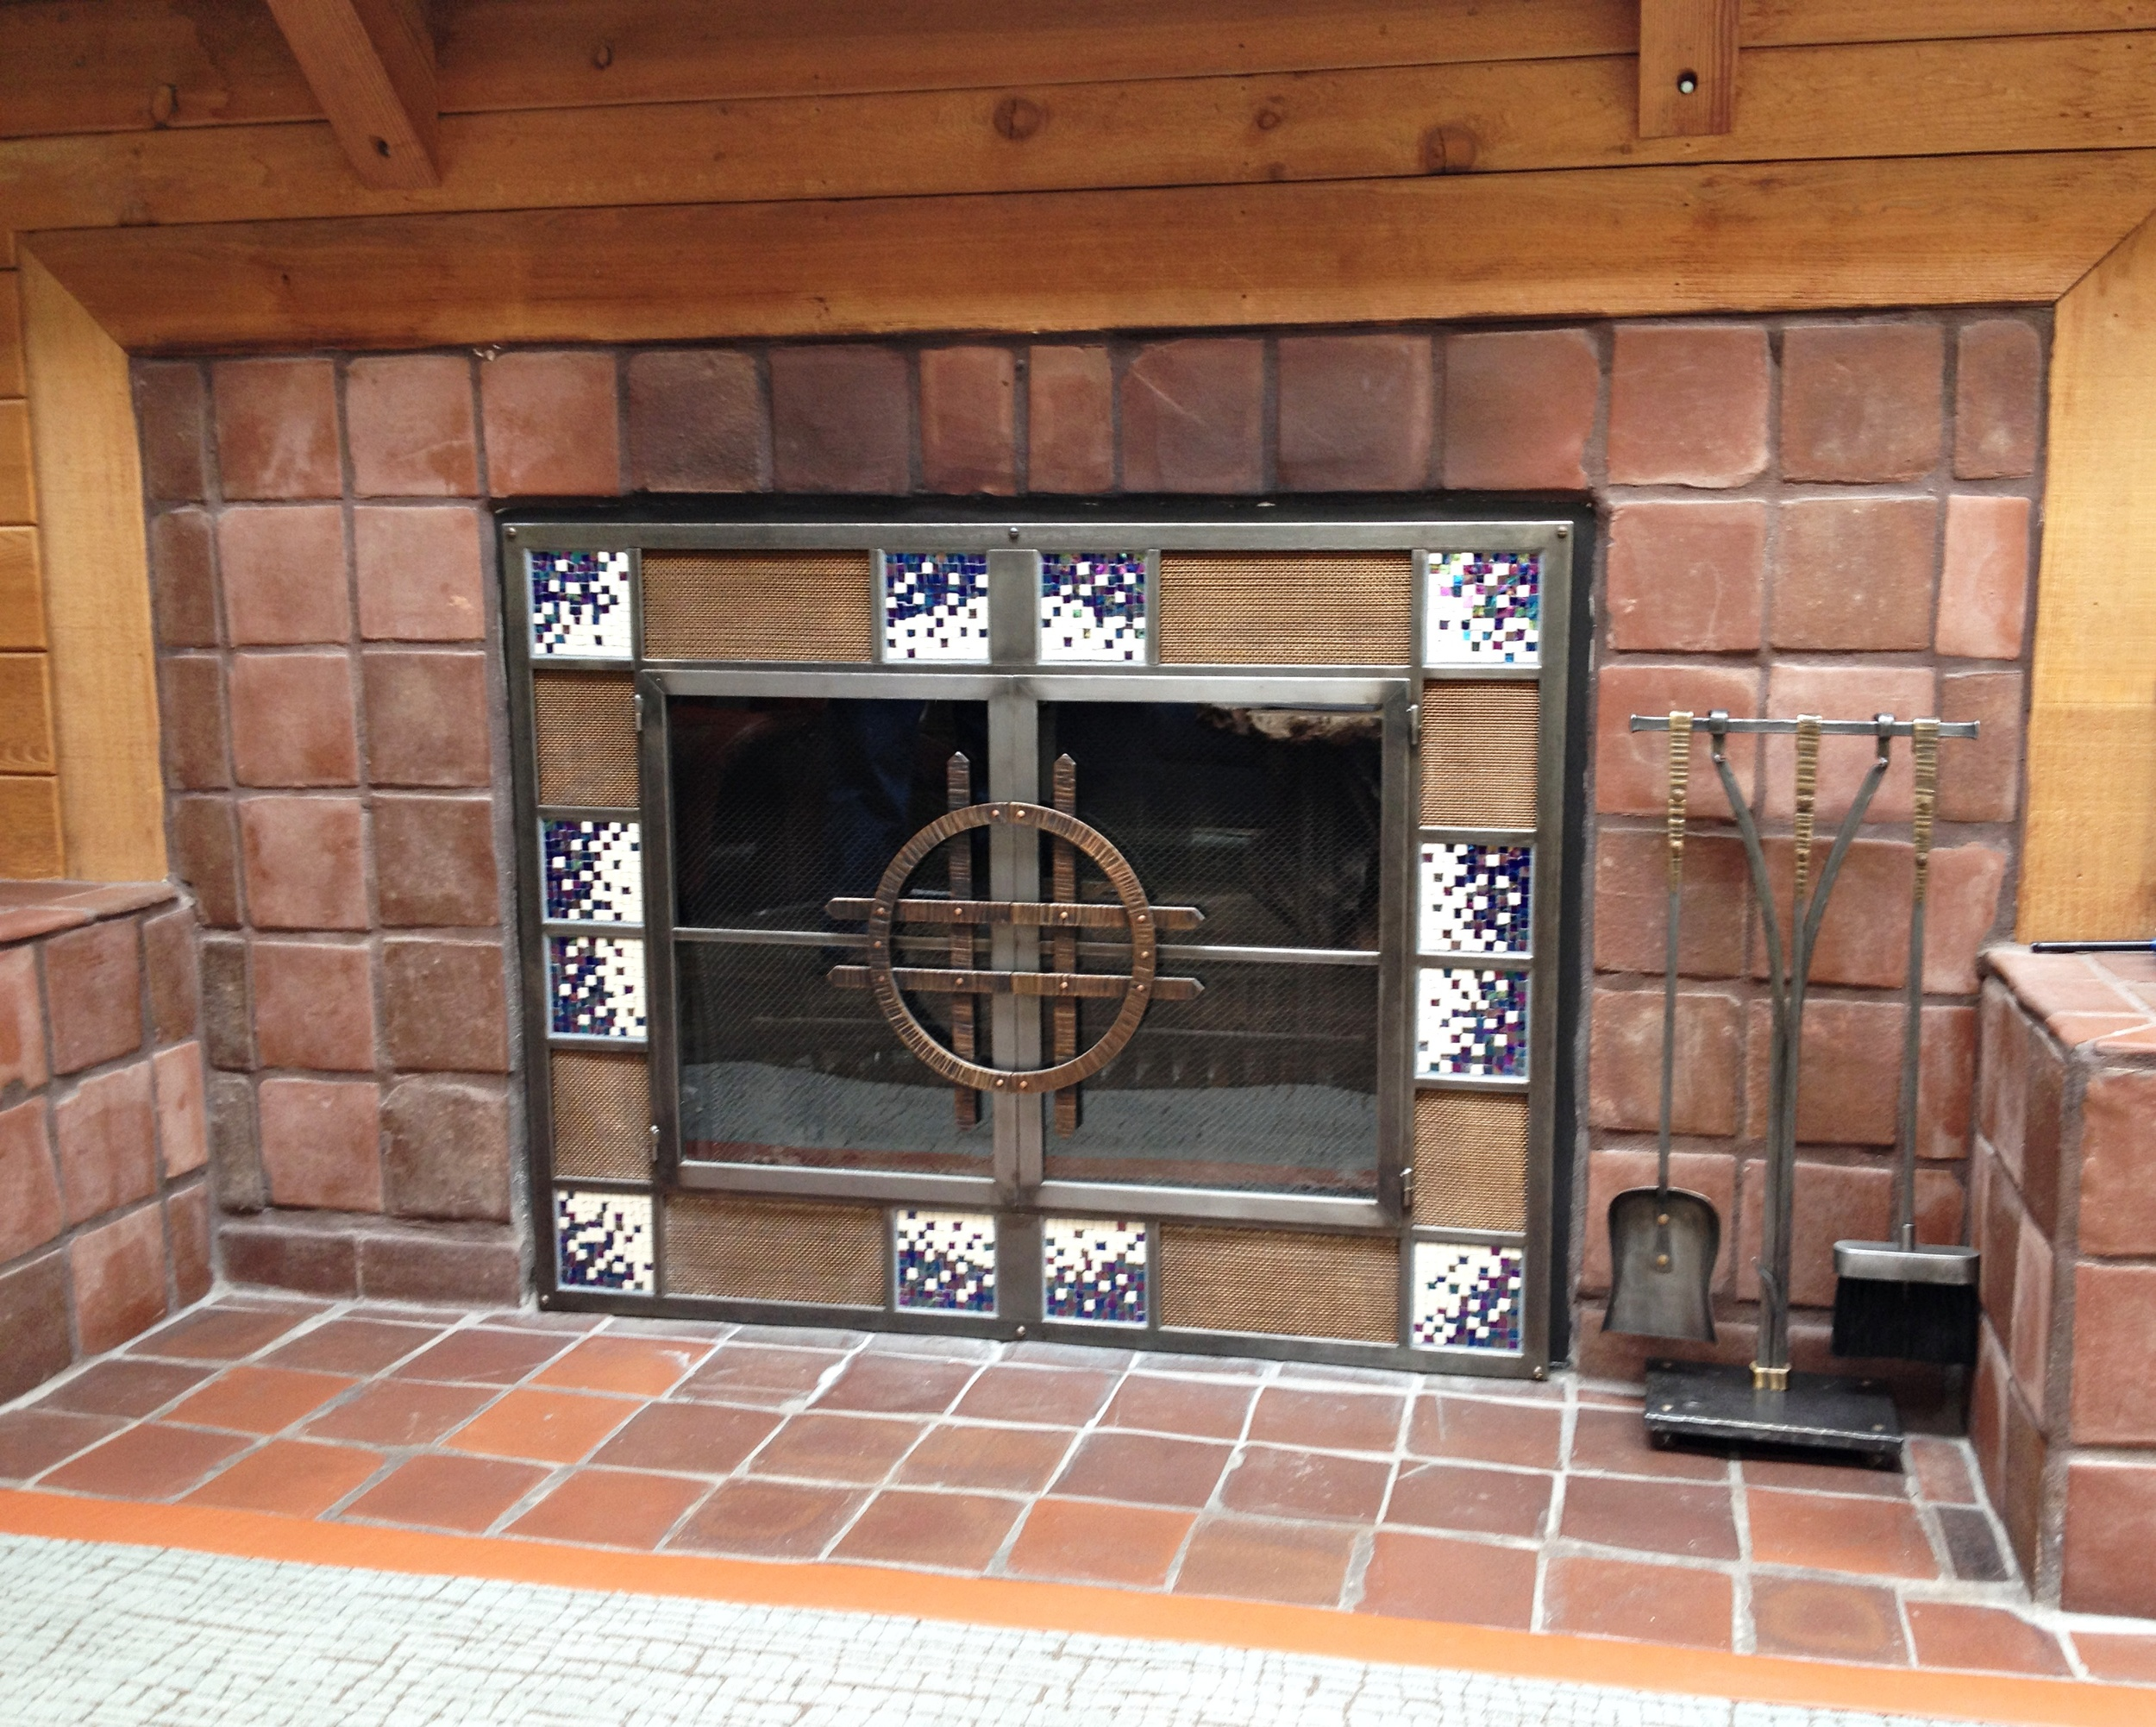 Mosaic Firescreen with forged bronze handles and forged bronze fireplace tool set by Phoenix Handcraft.